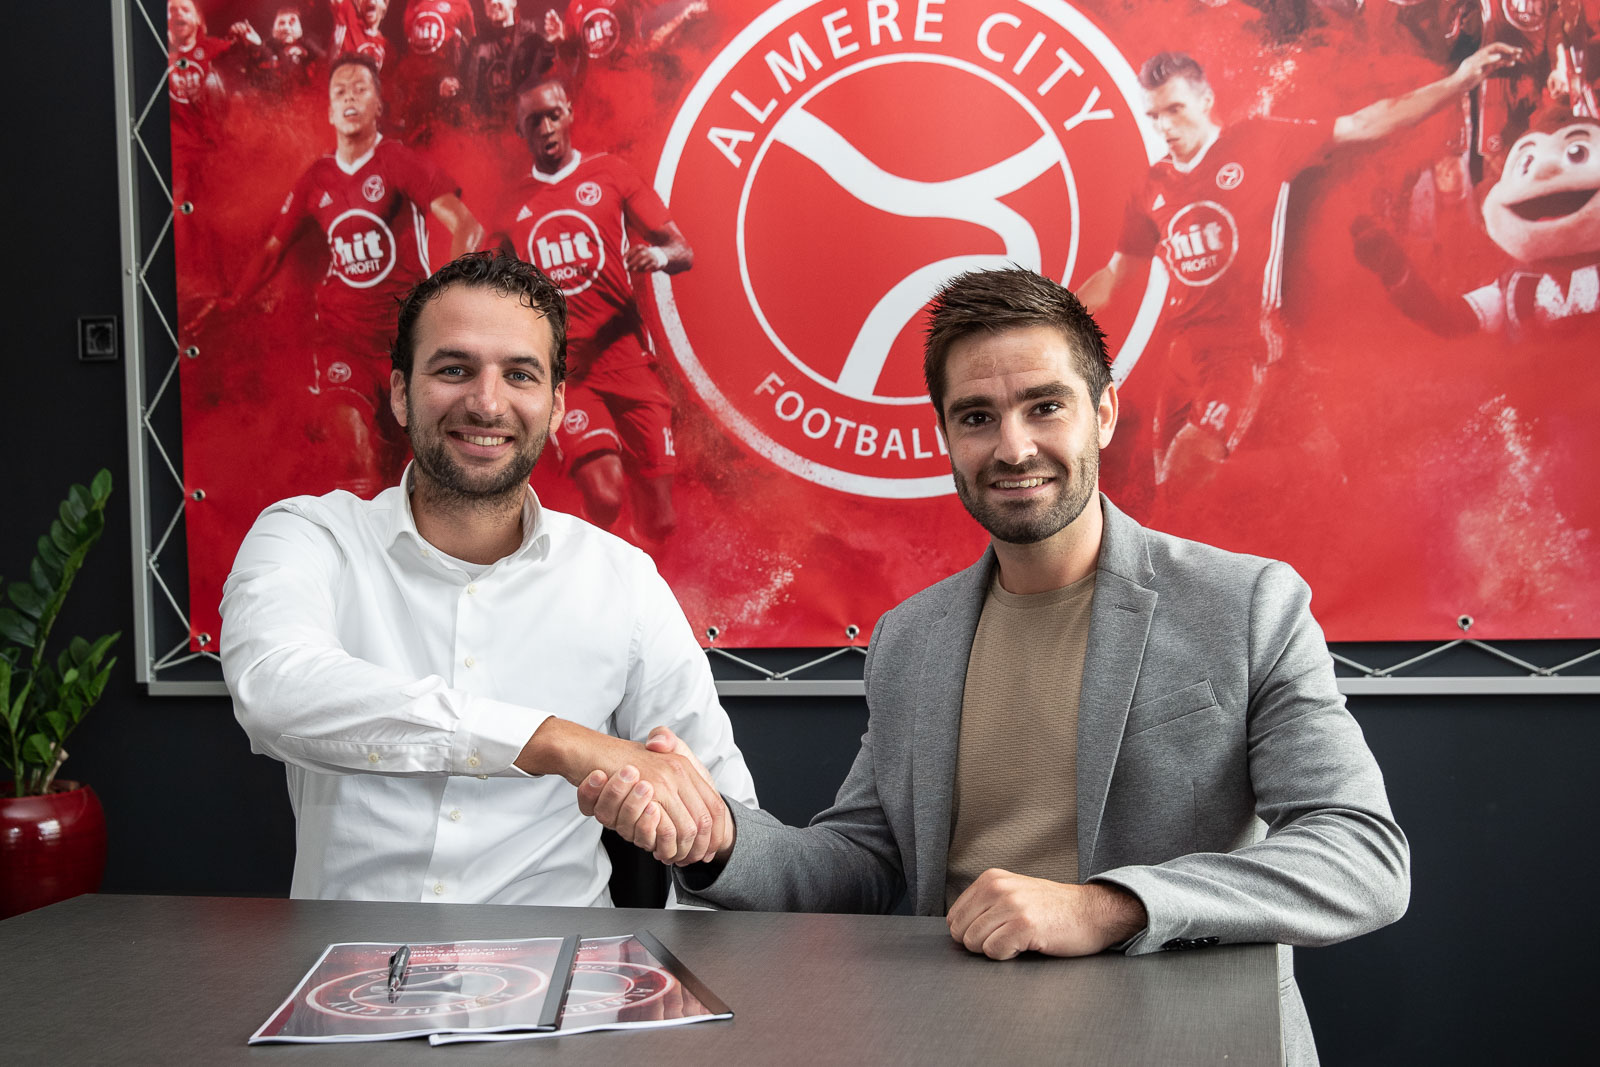 Grotesloep.nl zet koers richting Businessclub Almere City FC